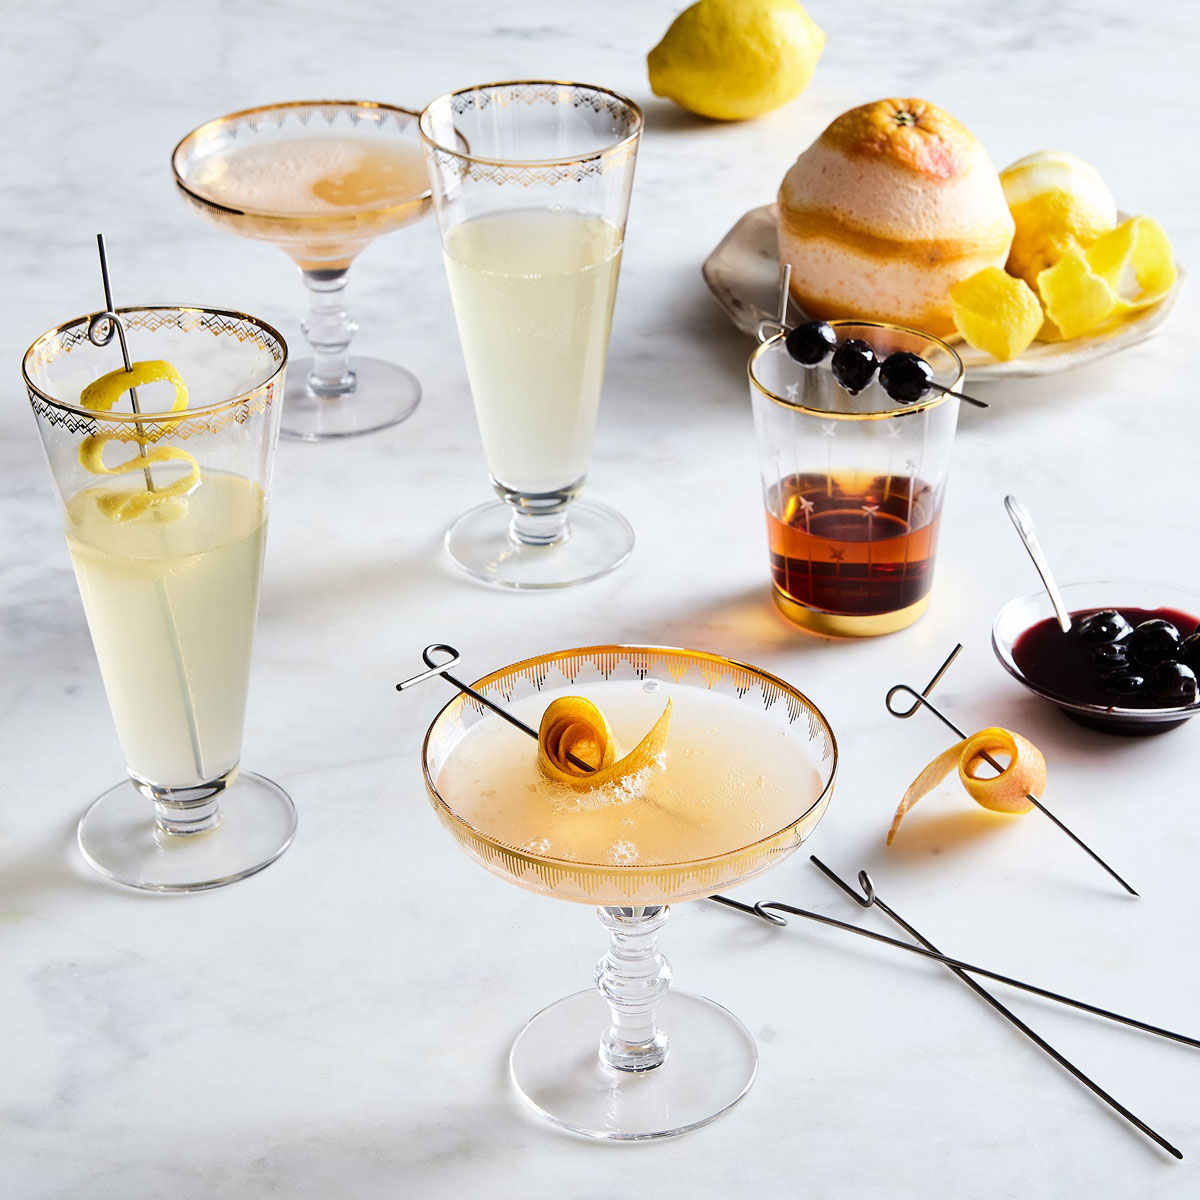 Gold detailed dessert coupes